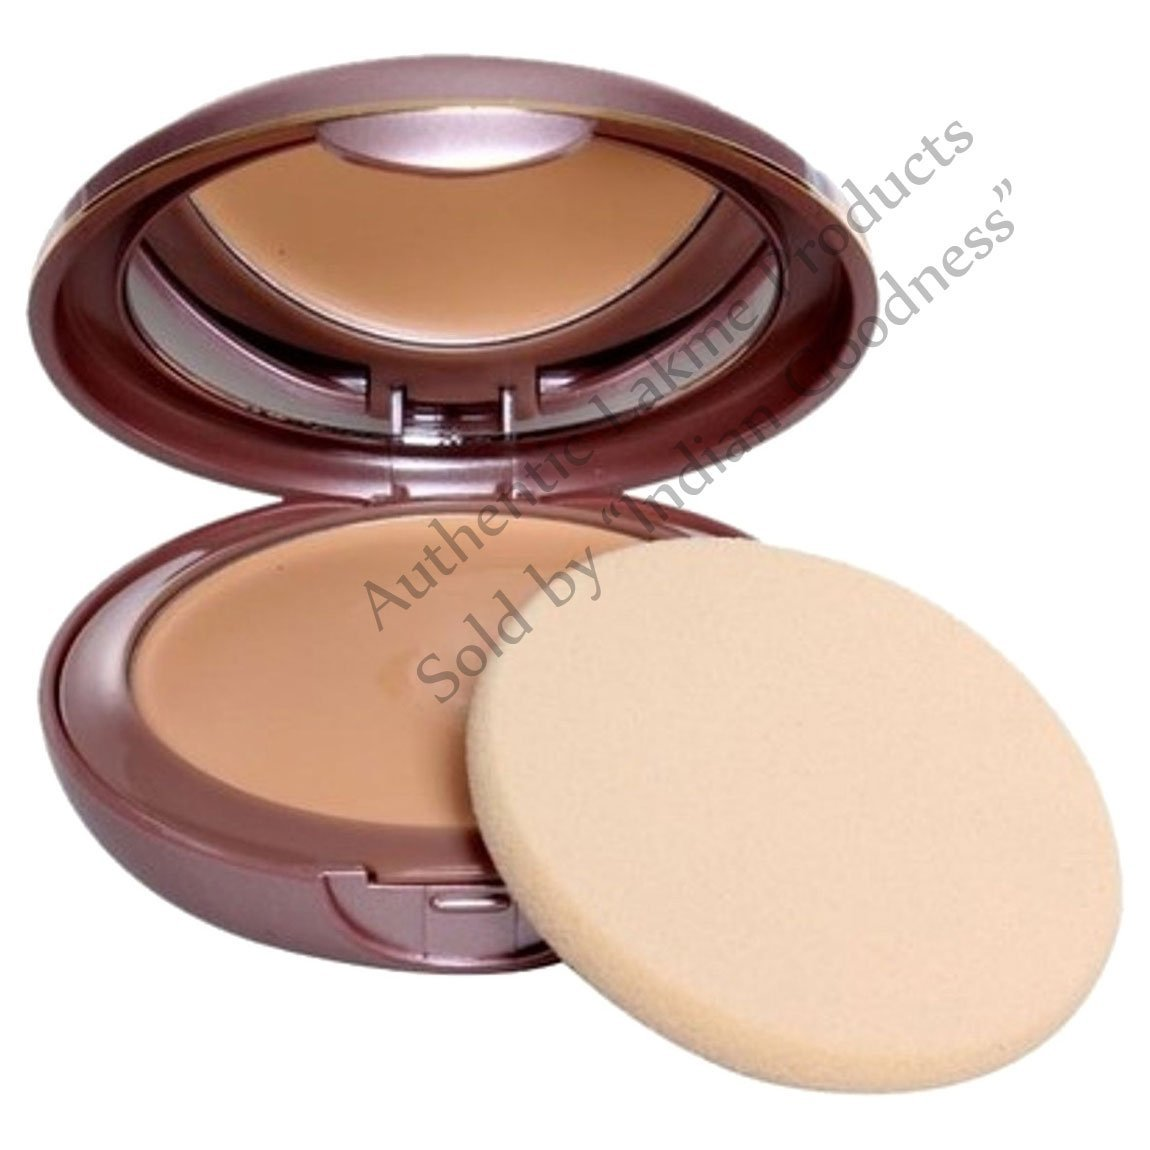 Lakme Flawless Creme Compact - 9 g (Shell) + Free Gifts + Free Shipping